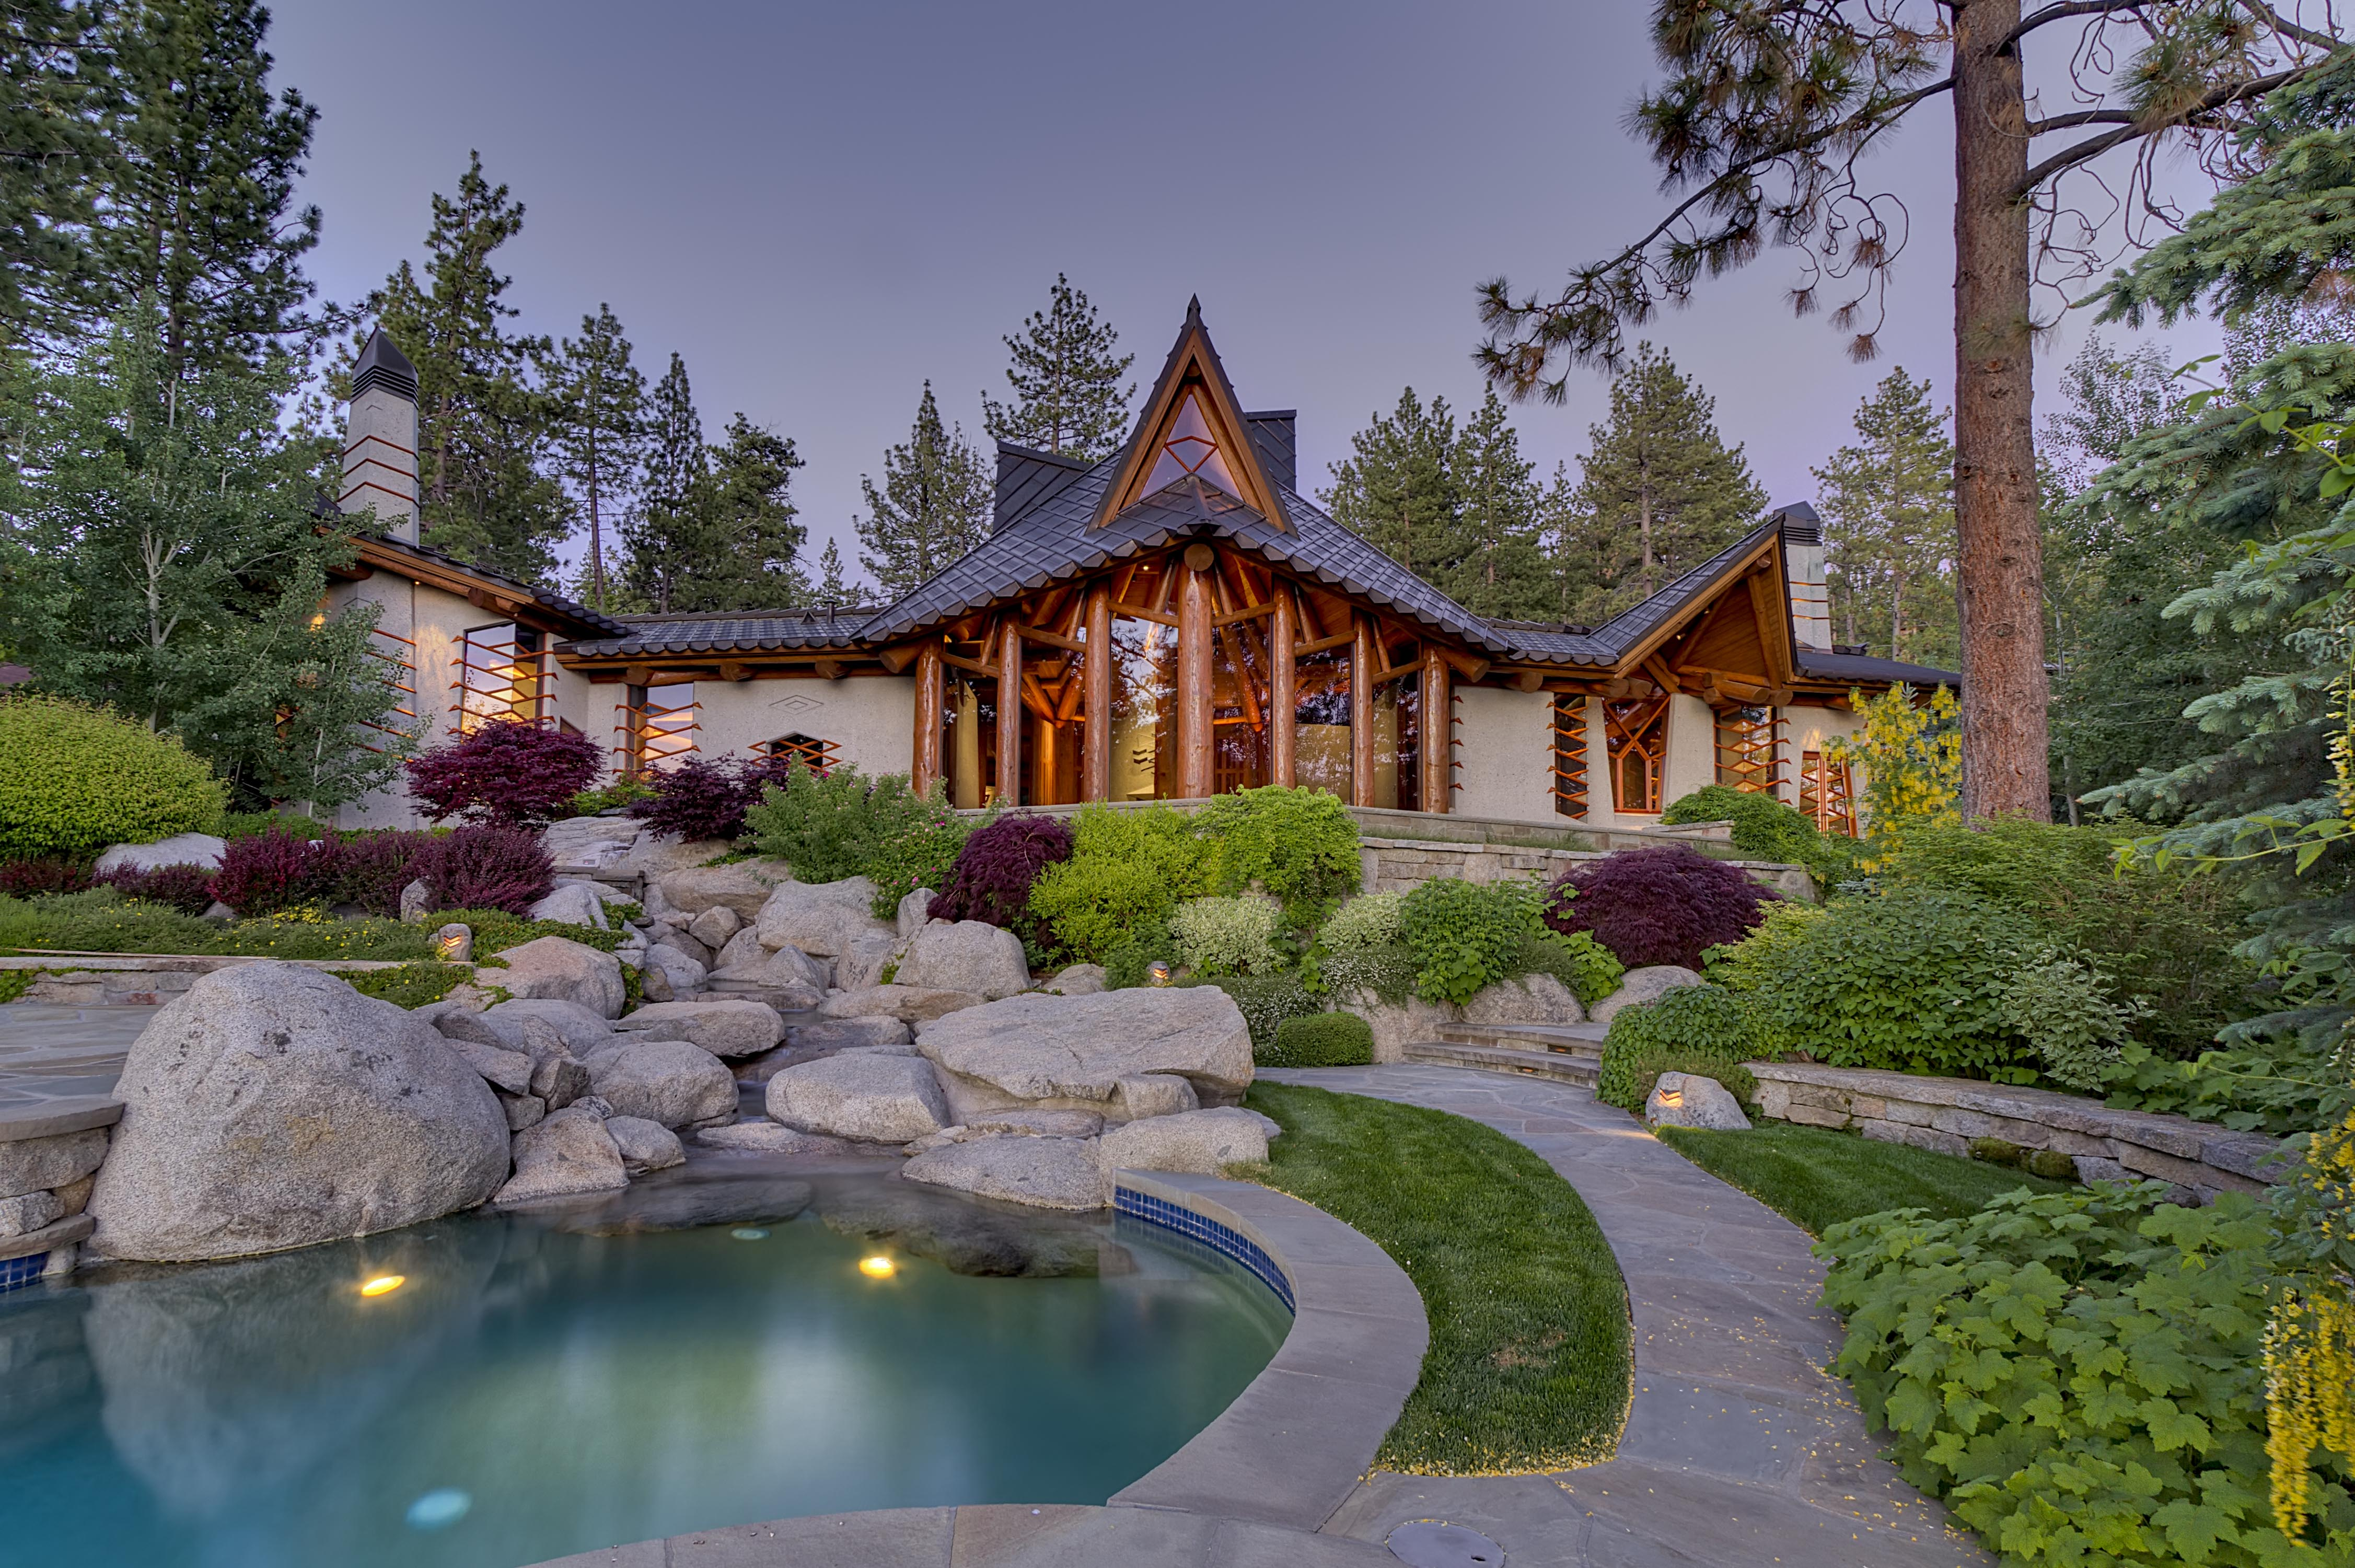 4 Bedrooms For Rent Lake Tahoe Real Estate Tahoe Luxury Properties